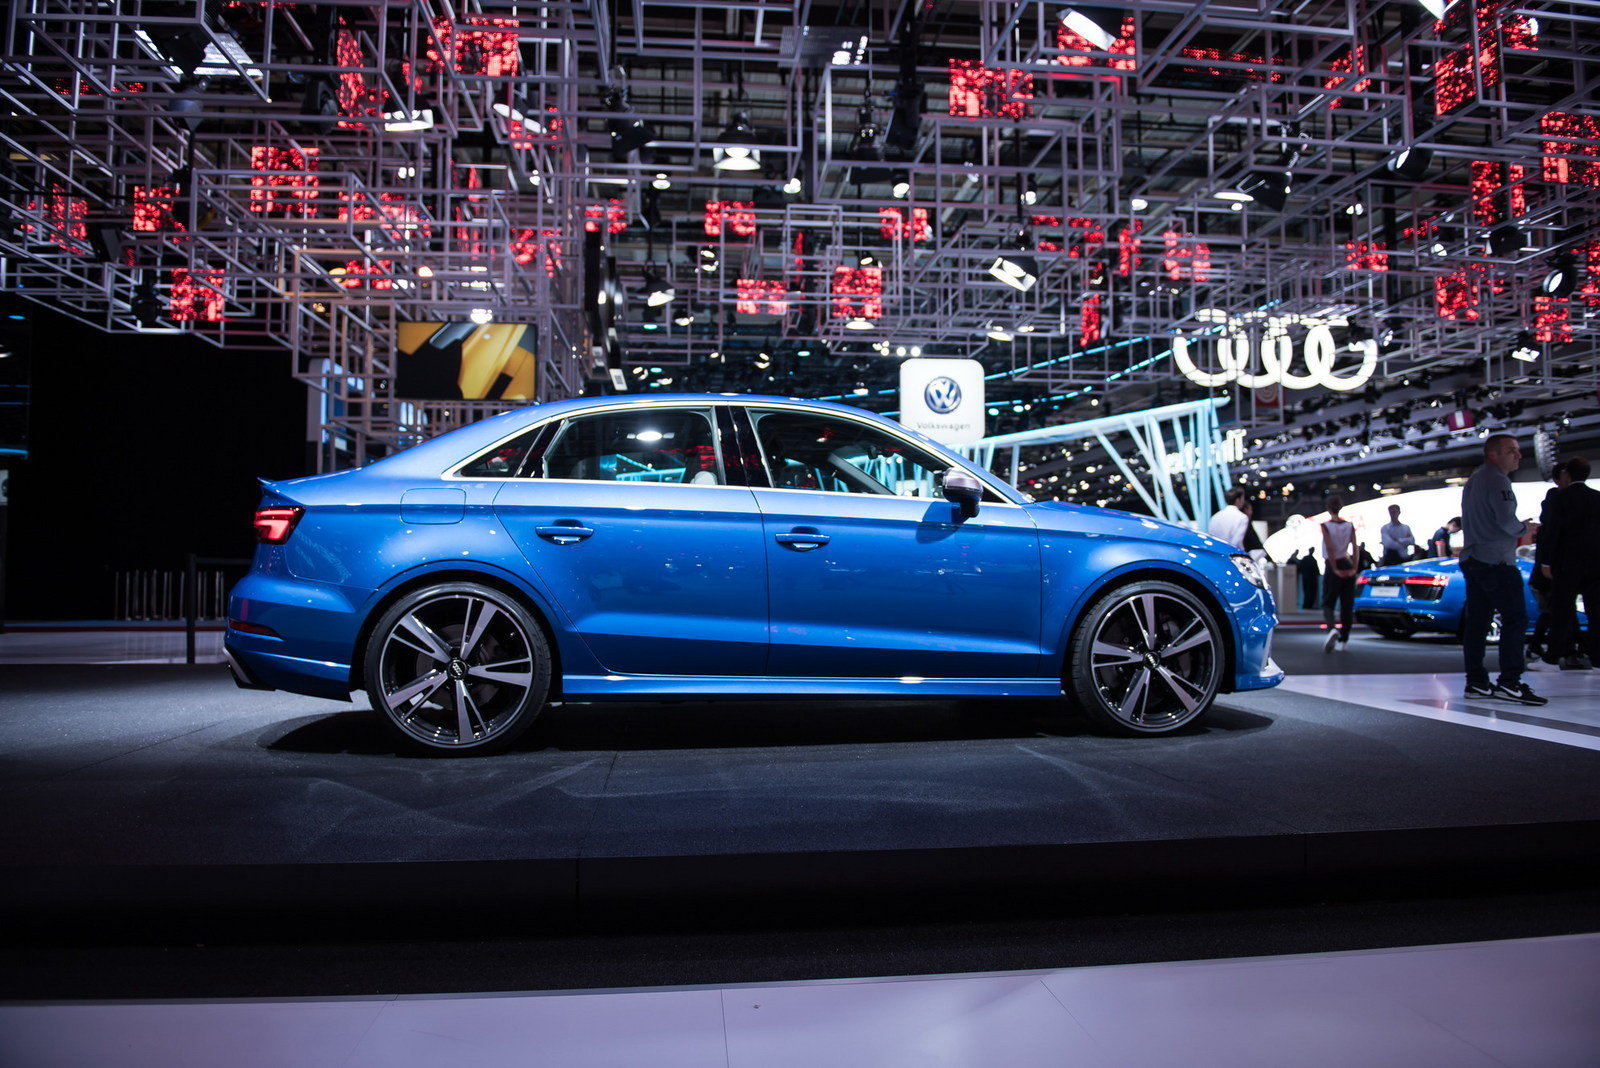 2018 audi rs3 sedan picture 690831 car review top speed. Black Bedroom Furniture Sets. Home Design Ideas